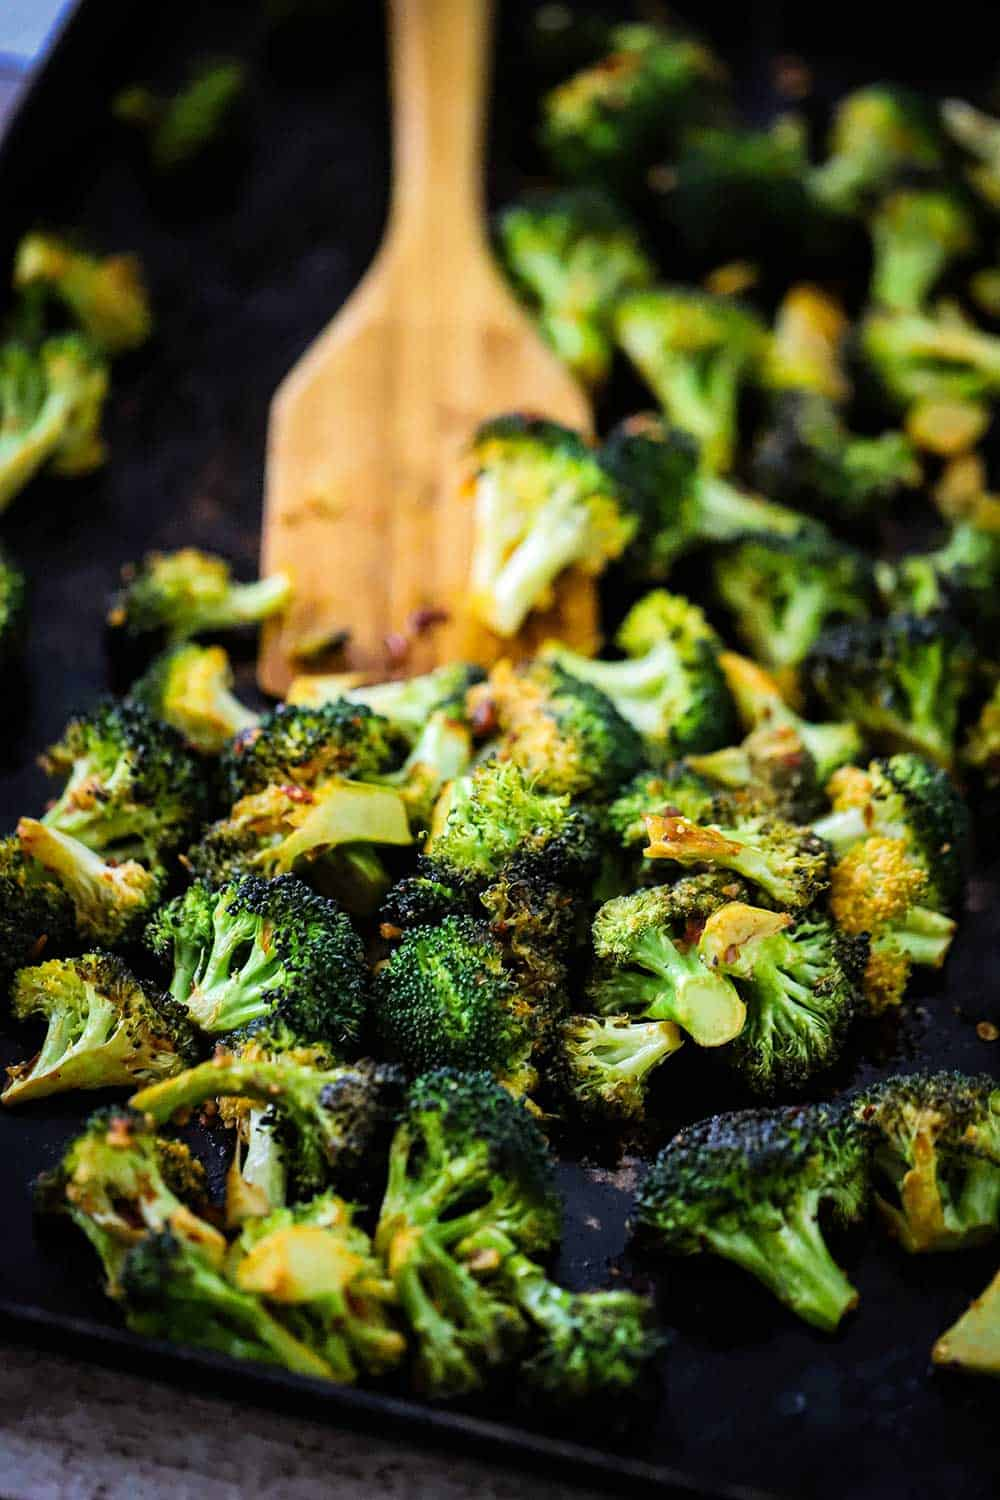 A baking sheet filled with roasted broccoli with a wooden spatula in the middle of the pan.